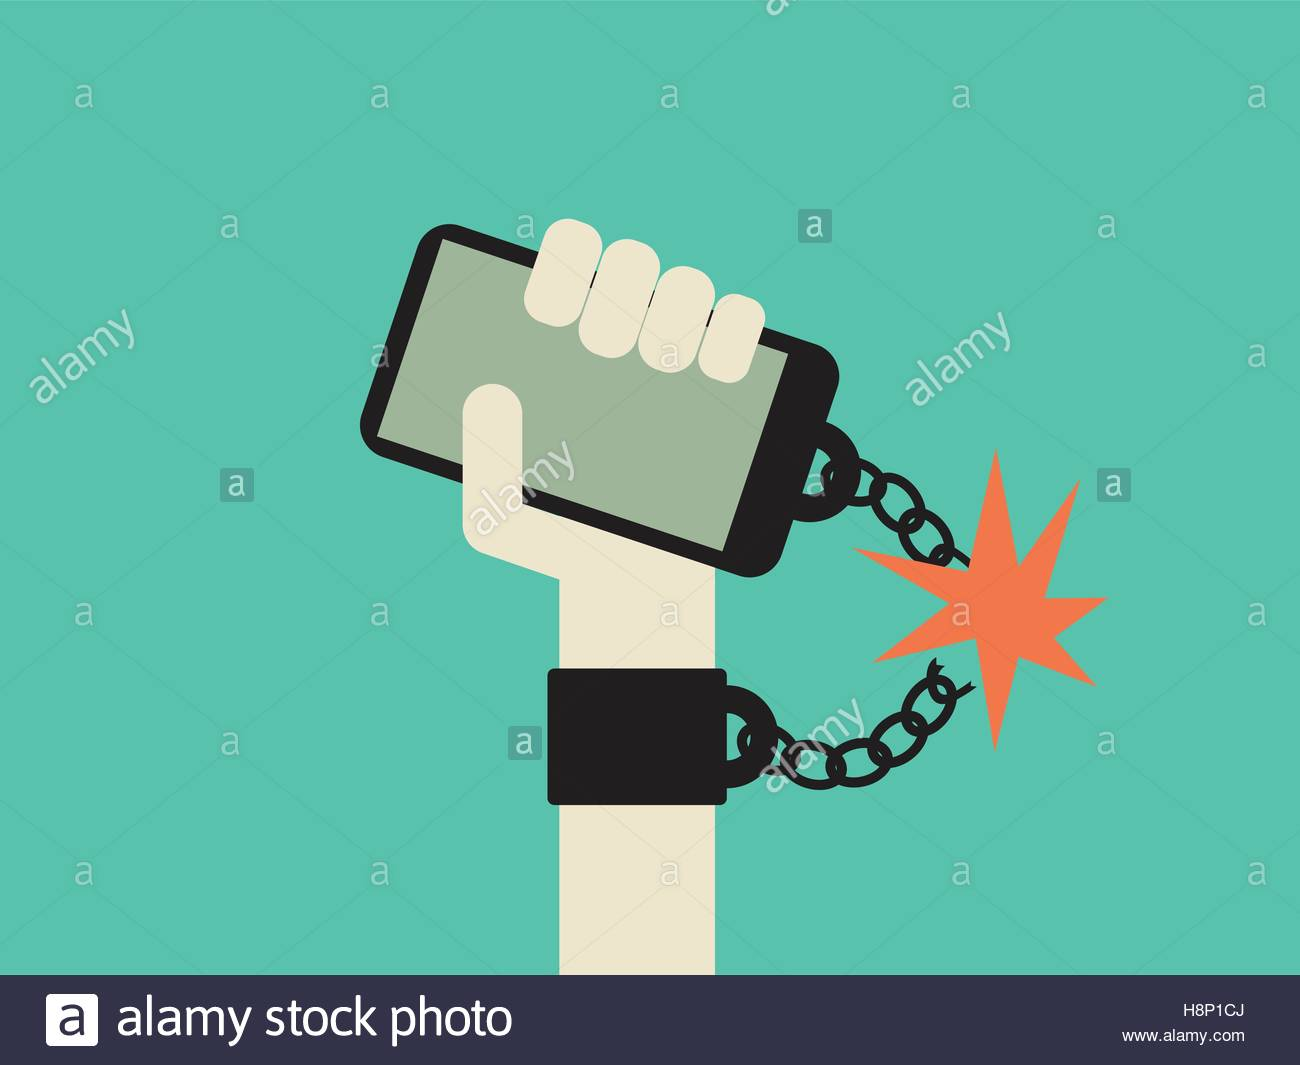 Break free from smartphone and technology addiction vector